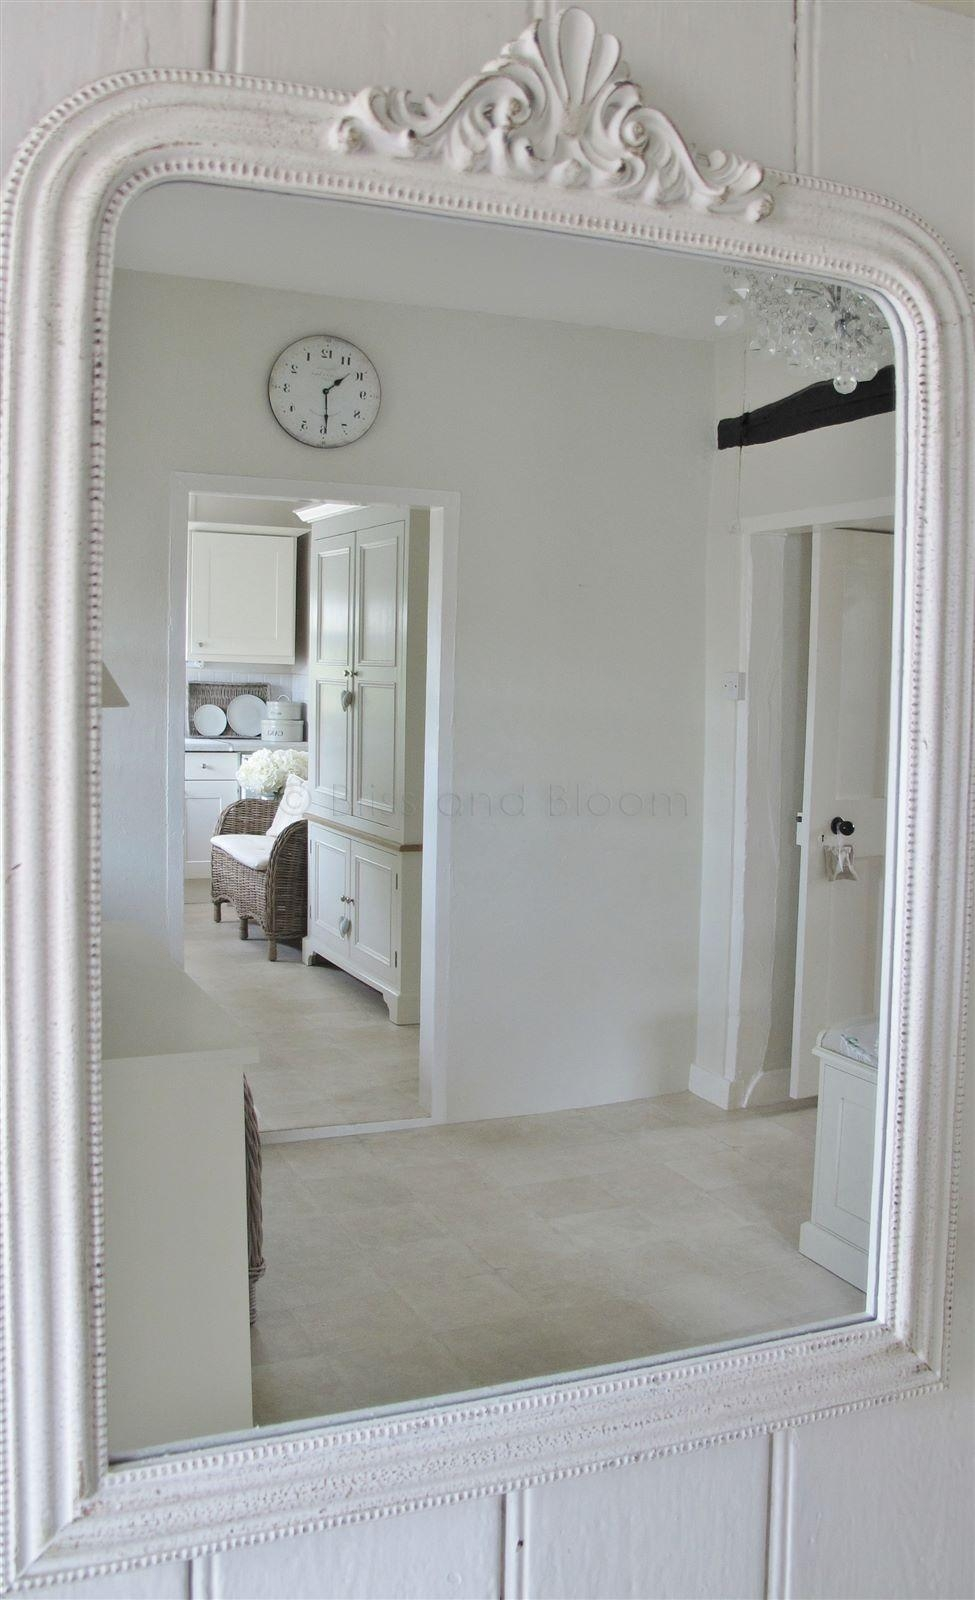 French Style White Wall Mirror | Bliss And Bloom Ltd Throughout French Style Wall Mirror (Image 17 of 20)